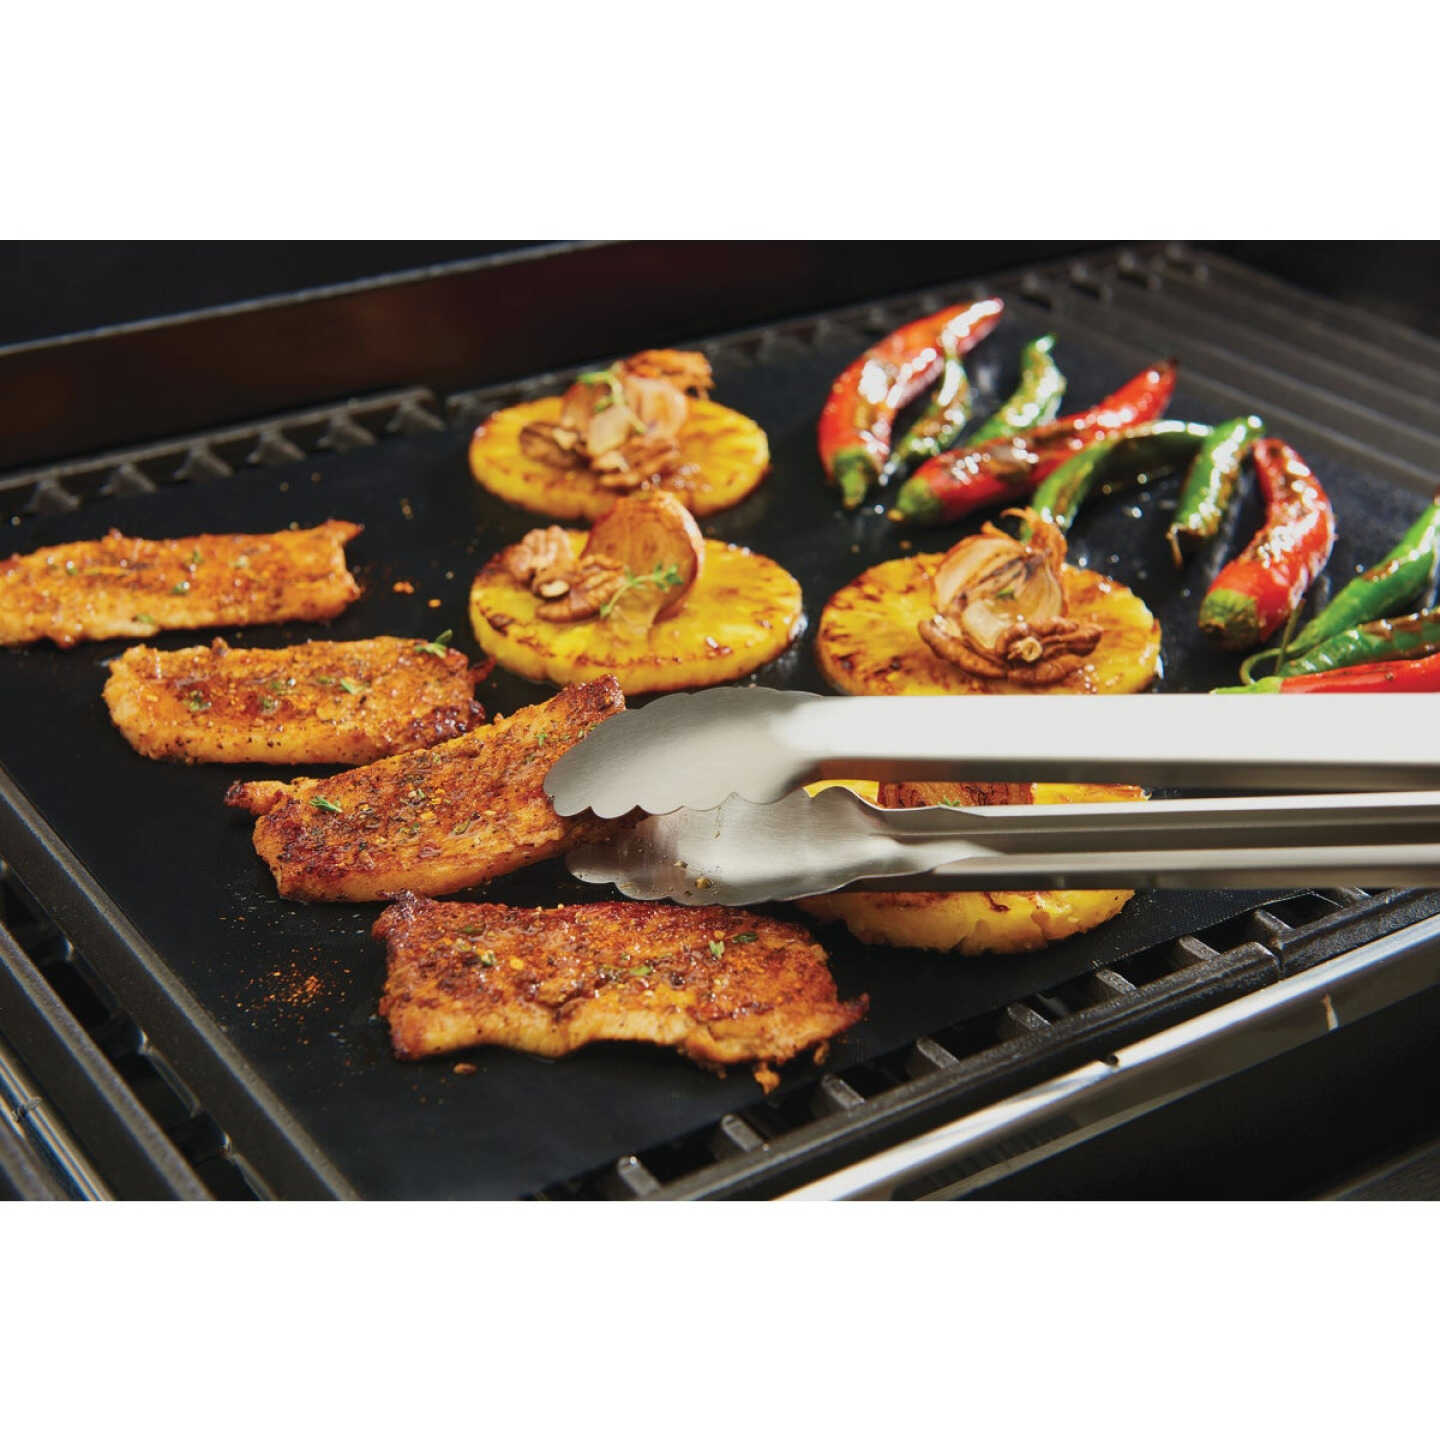 GrillPro 15.75 In. W. x 13 In. L. Non-Stick Cooking Mat (2-Pack) Image 2